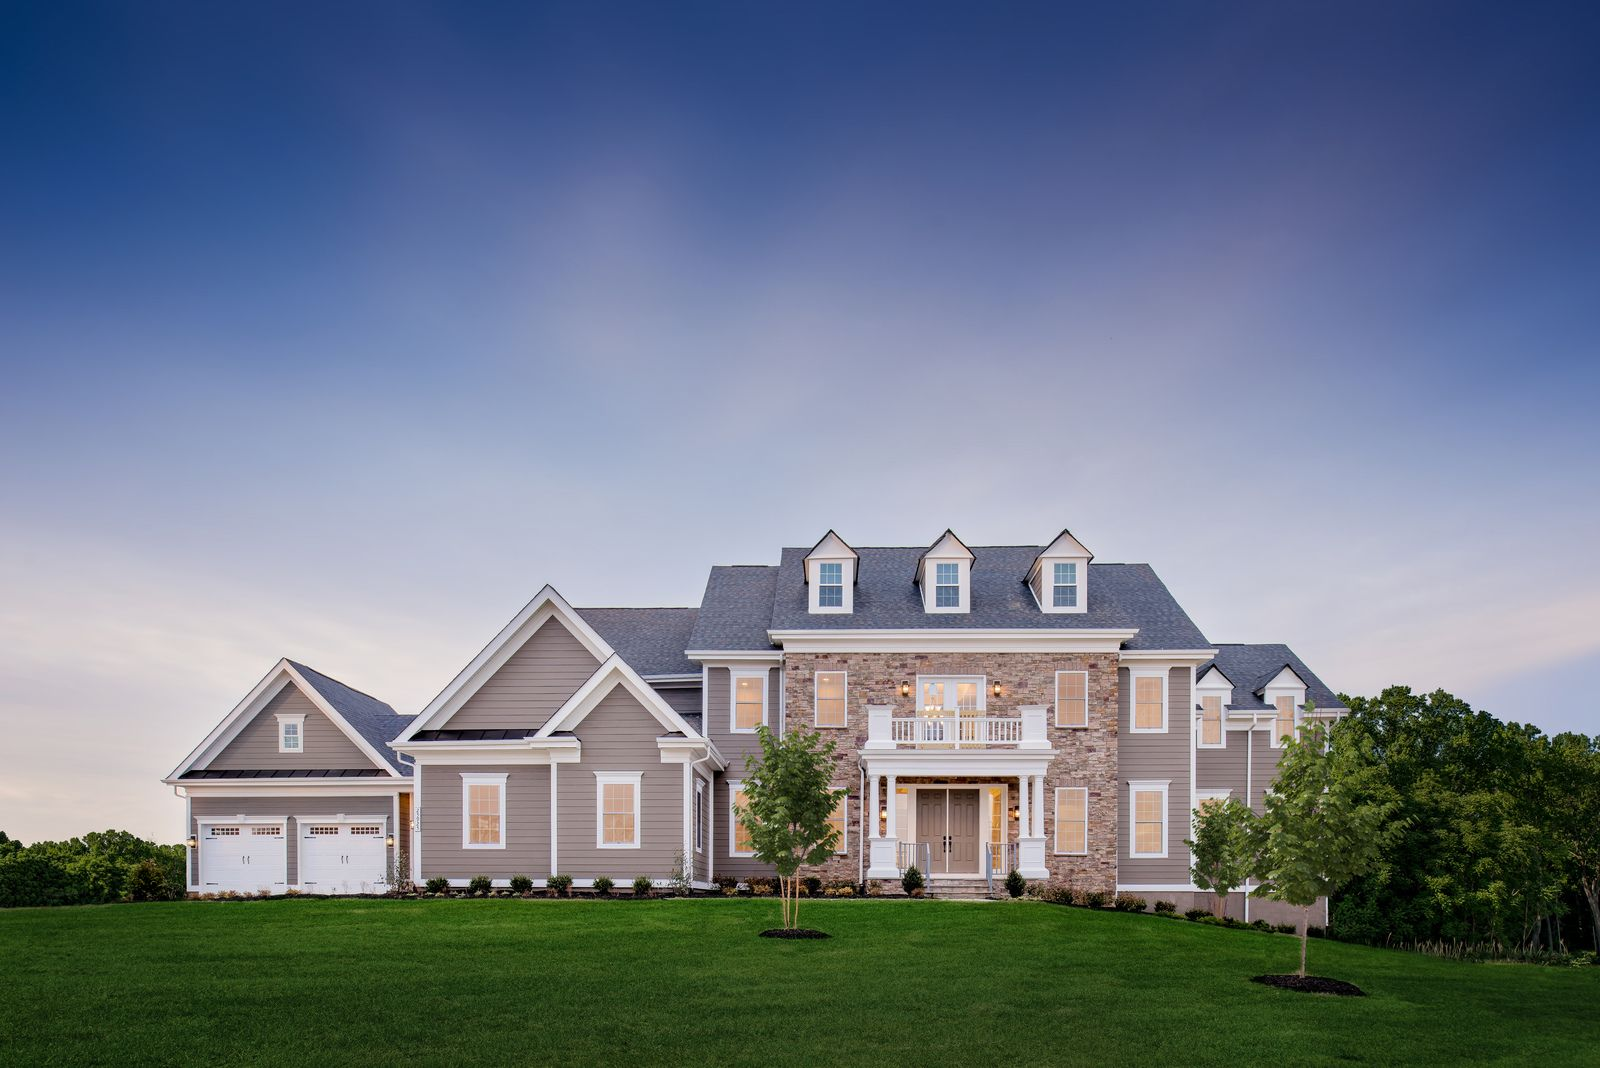 Estate Living in Willowsford's Ashburn Village:Come discover the region's premier farm-to-table community with NVHomes. Estate homesites are now released. Schedule a visit today!